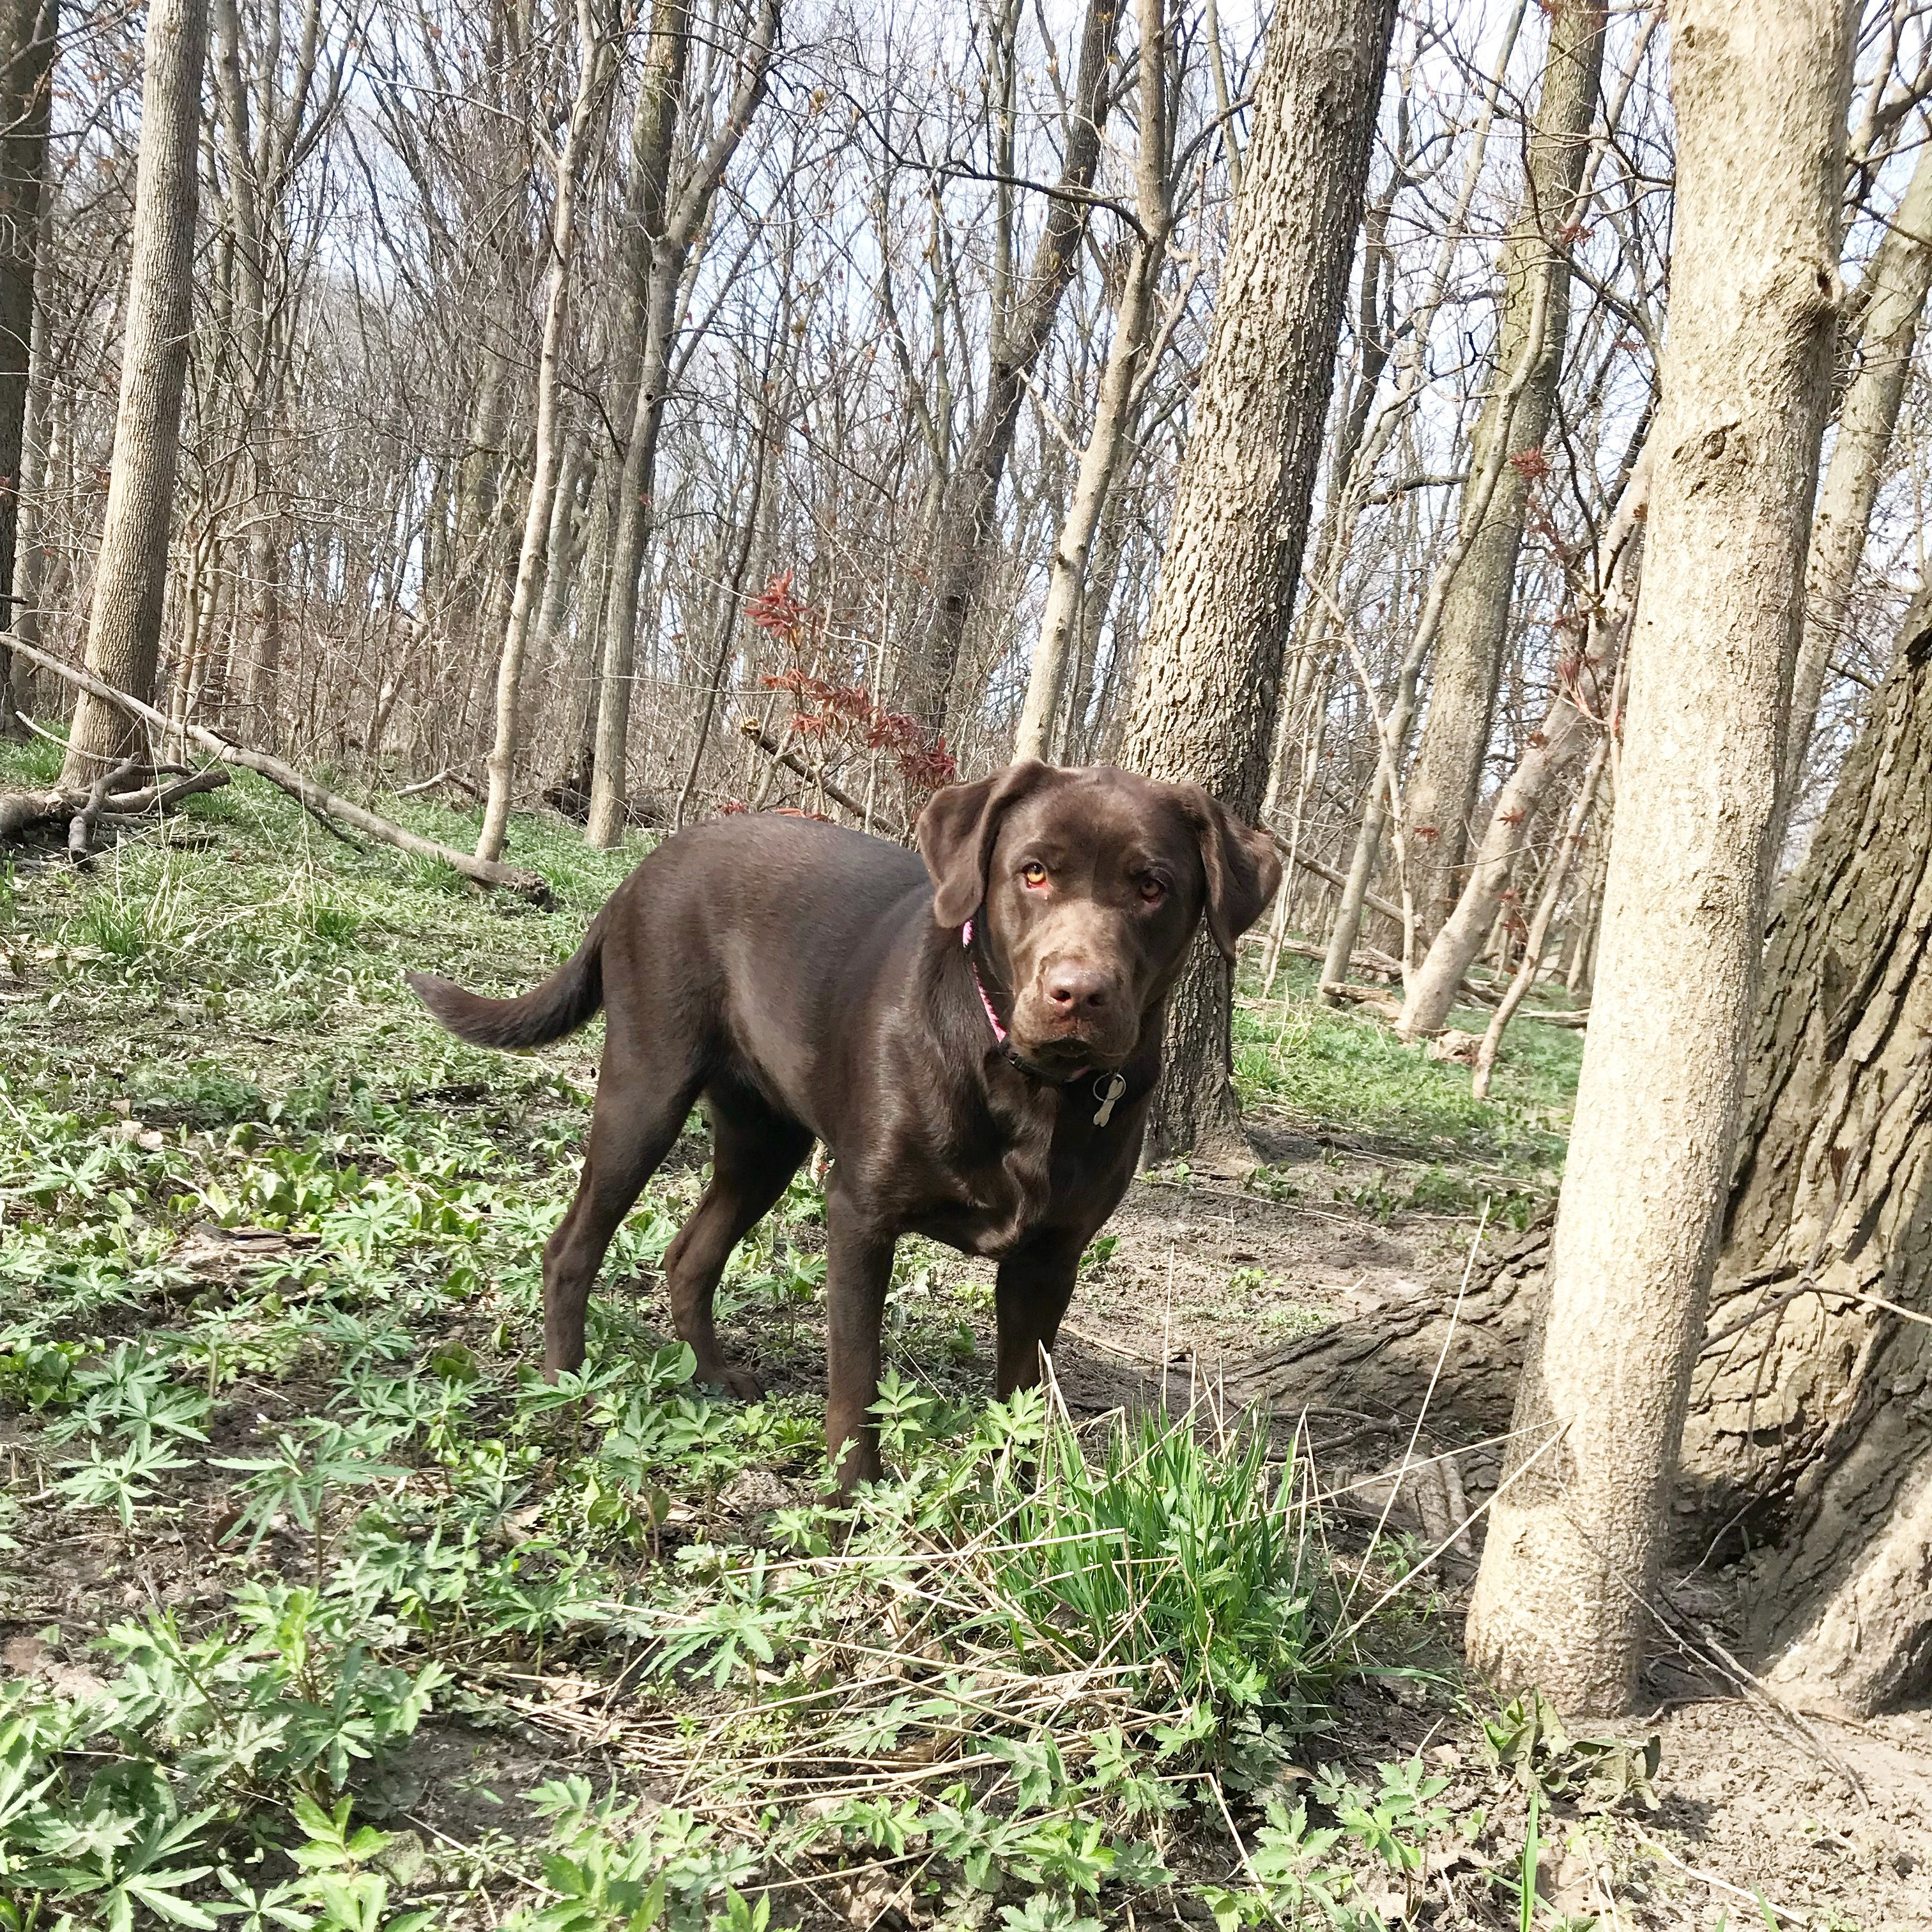 Ellie Mae River S One Year Old Chocolate Lab Cute Dogs Dogs I Love Dogs